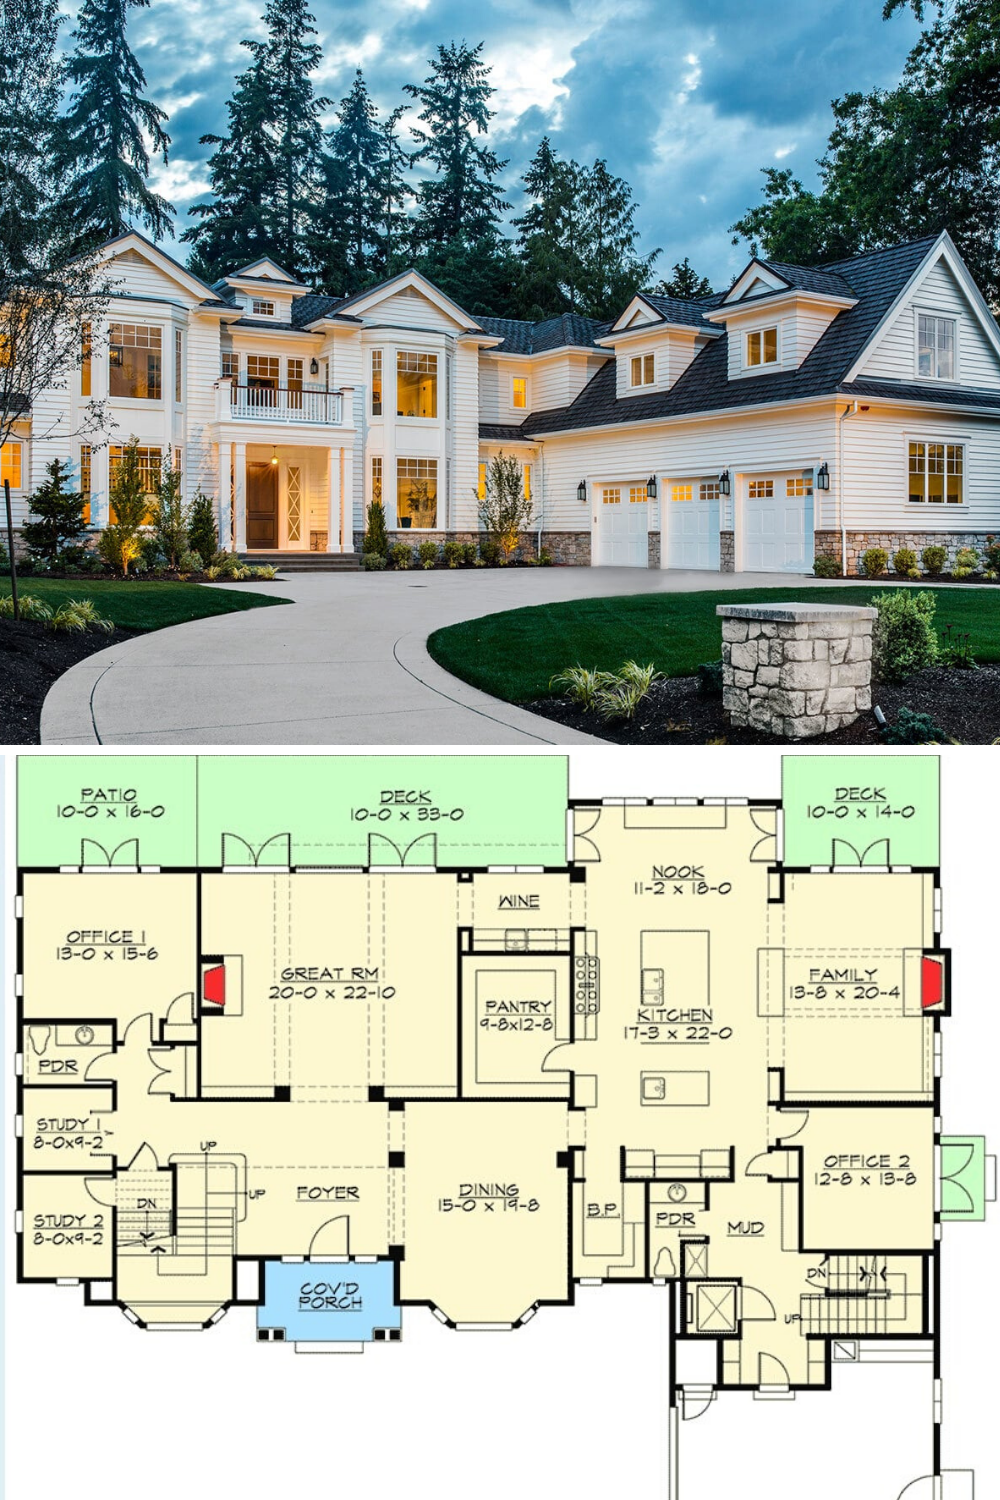 Pin By Faith Arnold On Future House Colonial House Plans Dream House Plans Sims House Plans